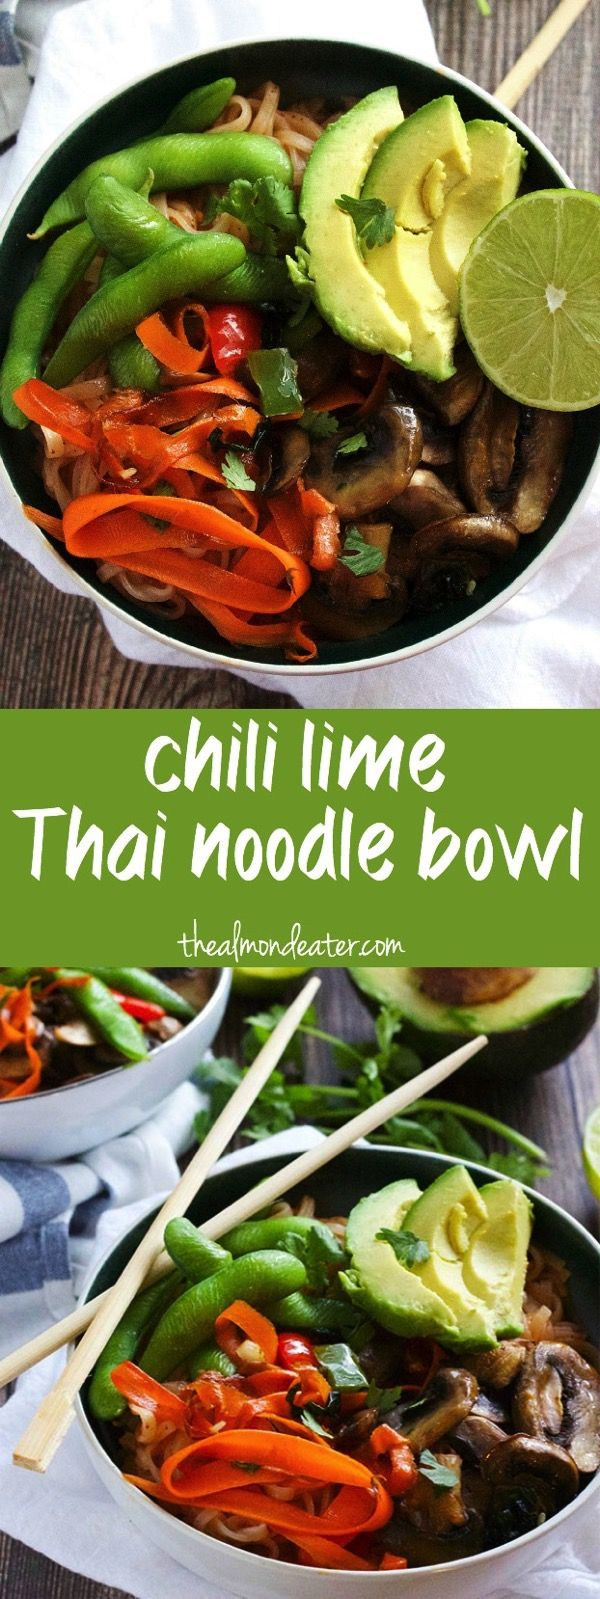 Gluten free, dairy free and only 8 ingredients--this Thai Noodle Bowl is packed with vegetables and a simple vegetarian weeknight meal | thealmondeater.com